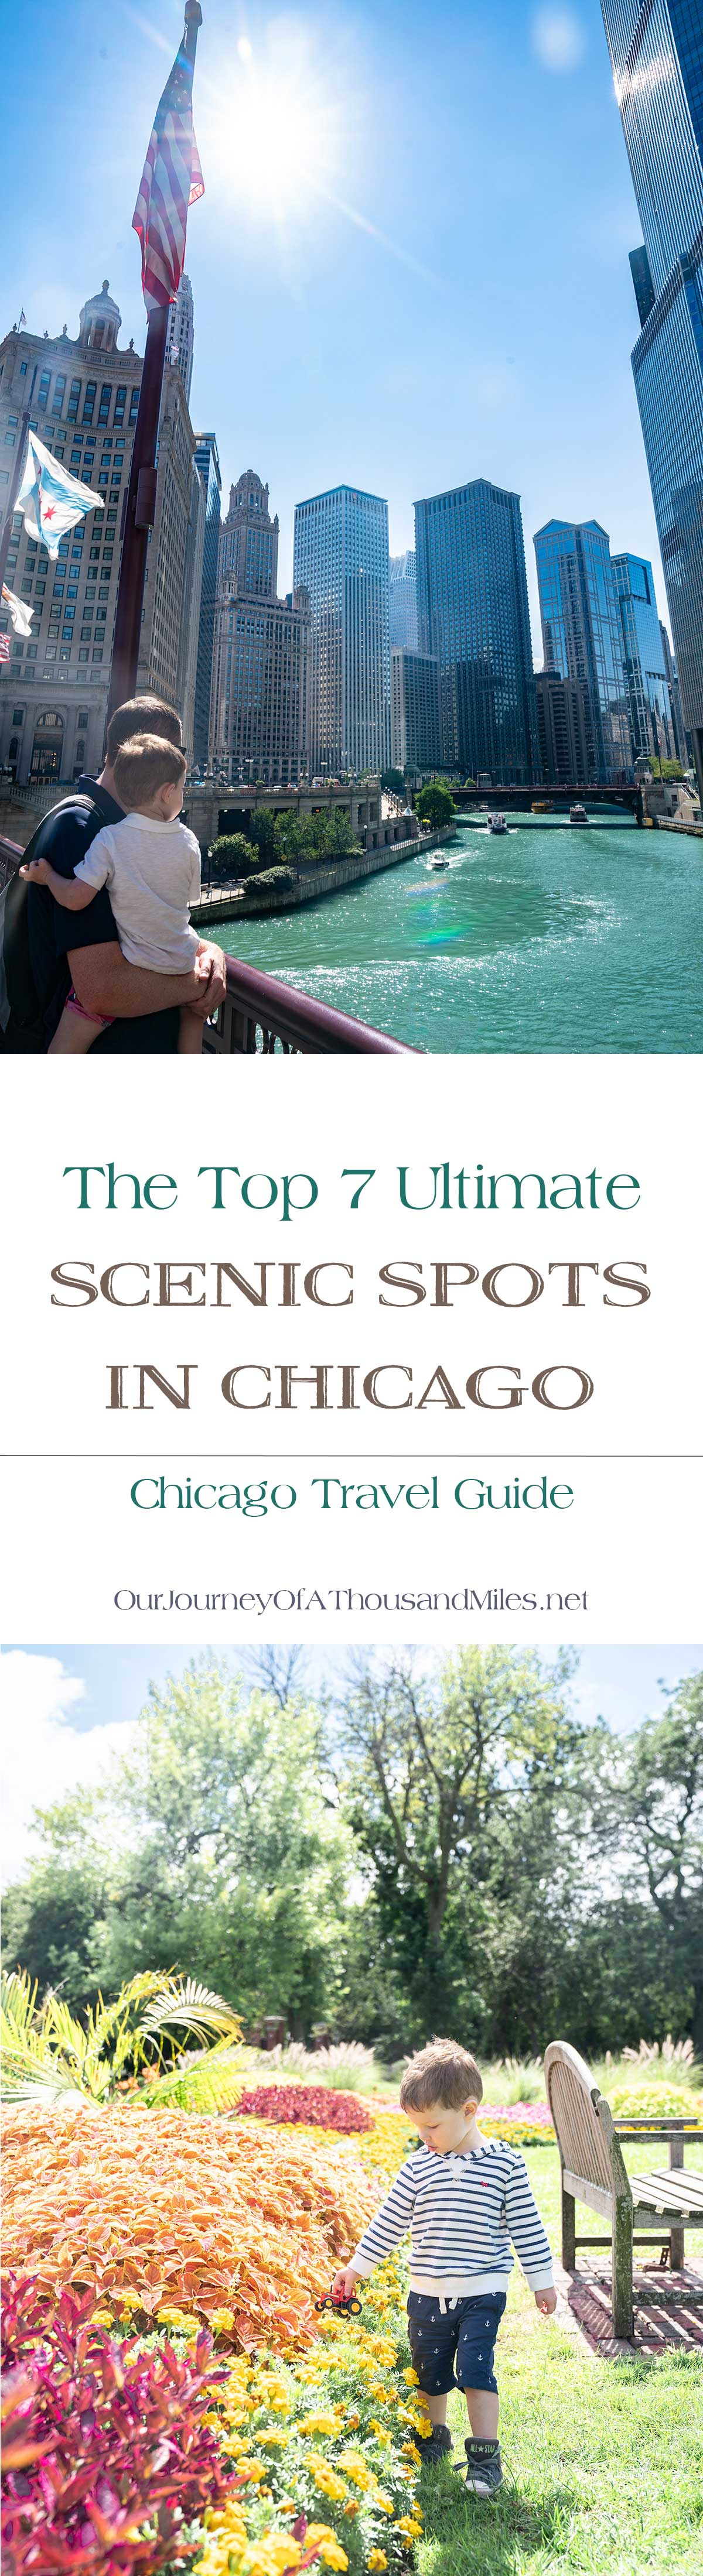 The-Top-7-Ultimate-Scenic-Spots-in-Chicago